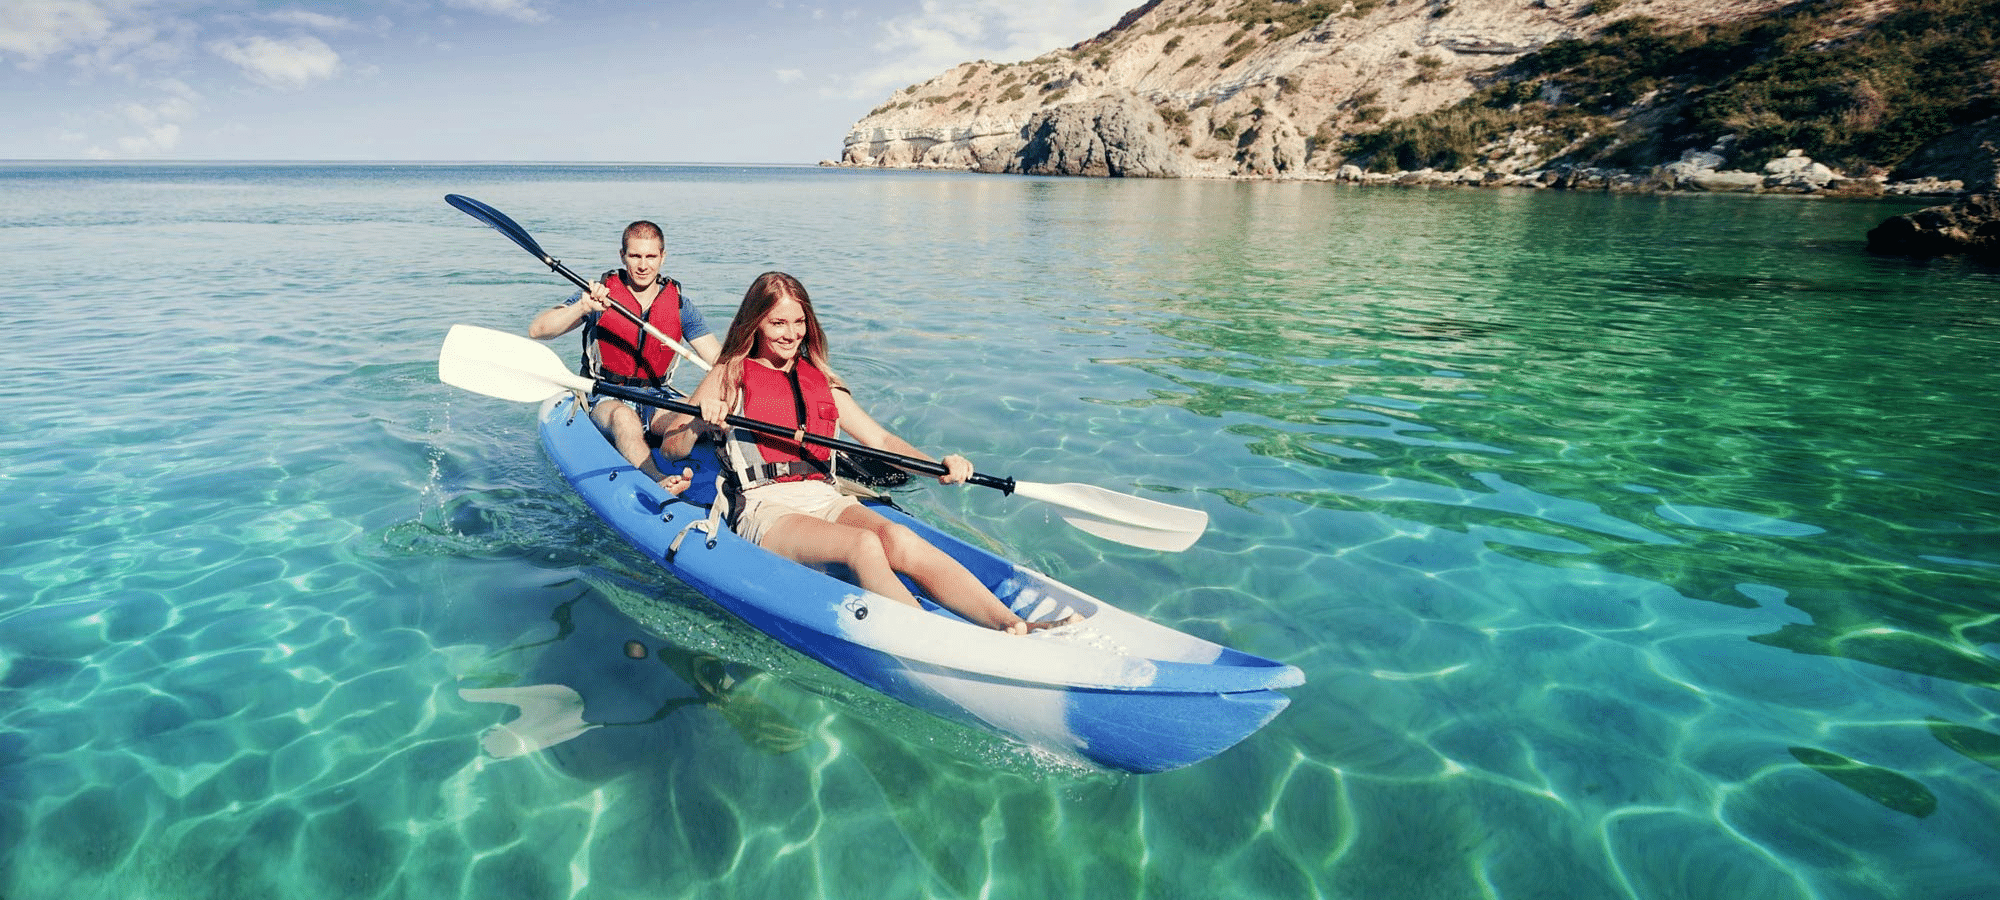 4 Outdoor Activities That You Can Enjoy to Escape From the Concrete Jungle 13